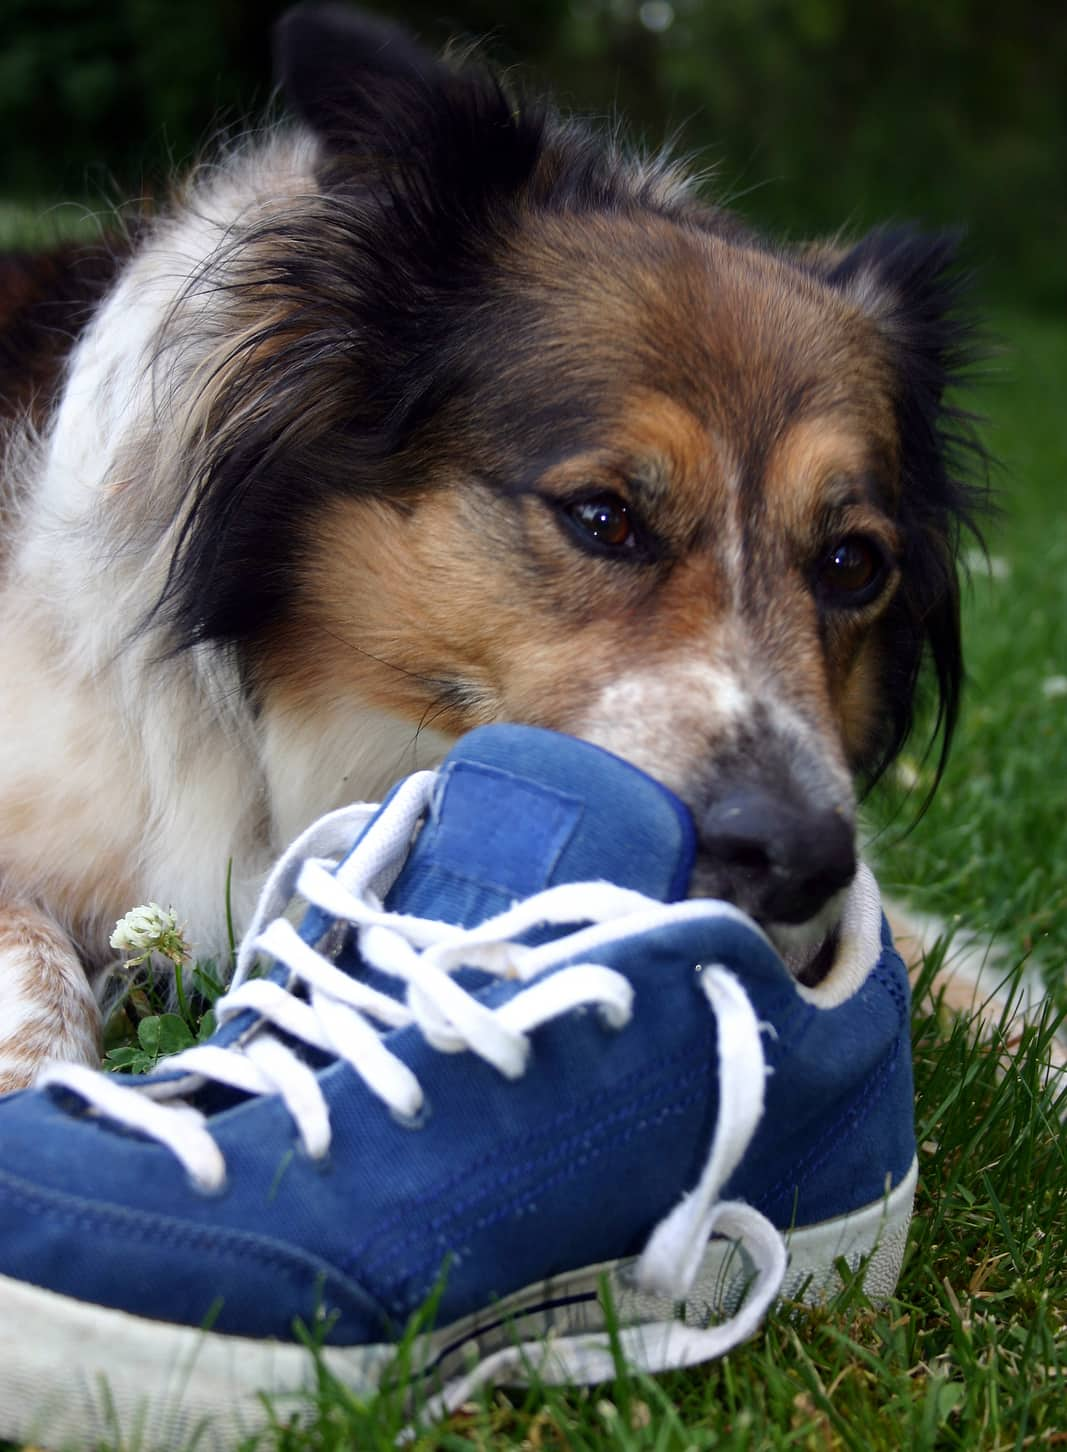 Border collie chewing on a blue sneaker